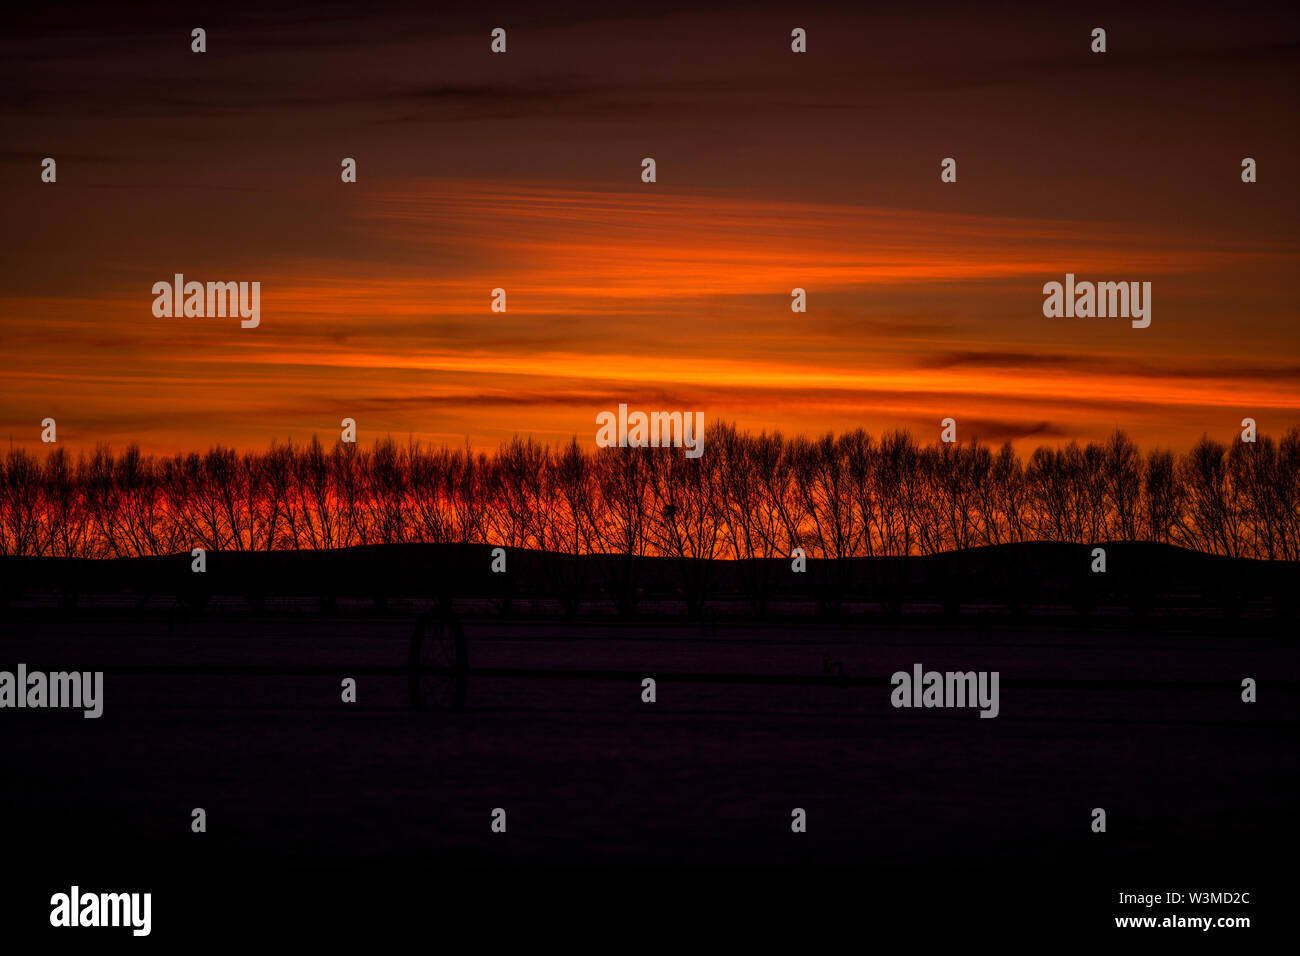 Silhouettes of bare trees at sunset in Bellevue, Idaho, USA - Stock Image